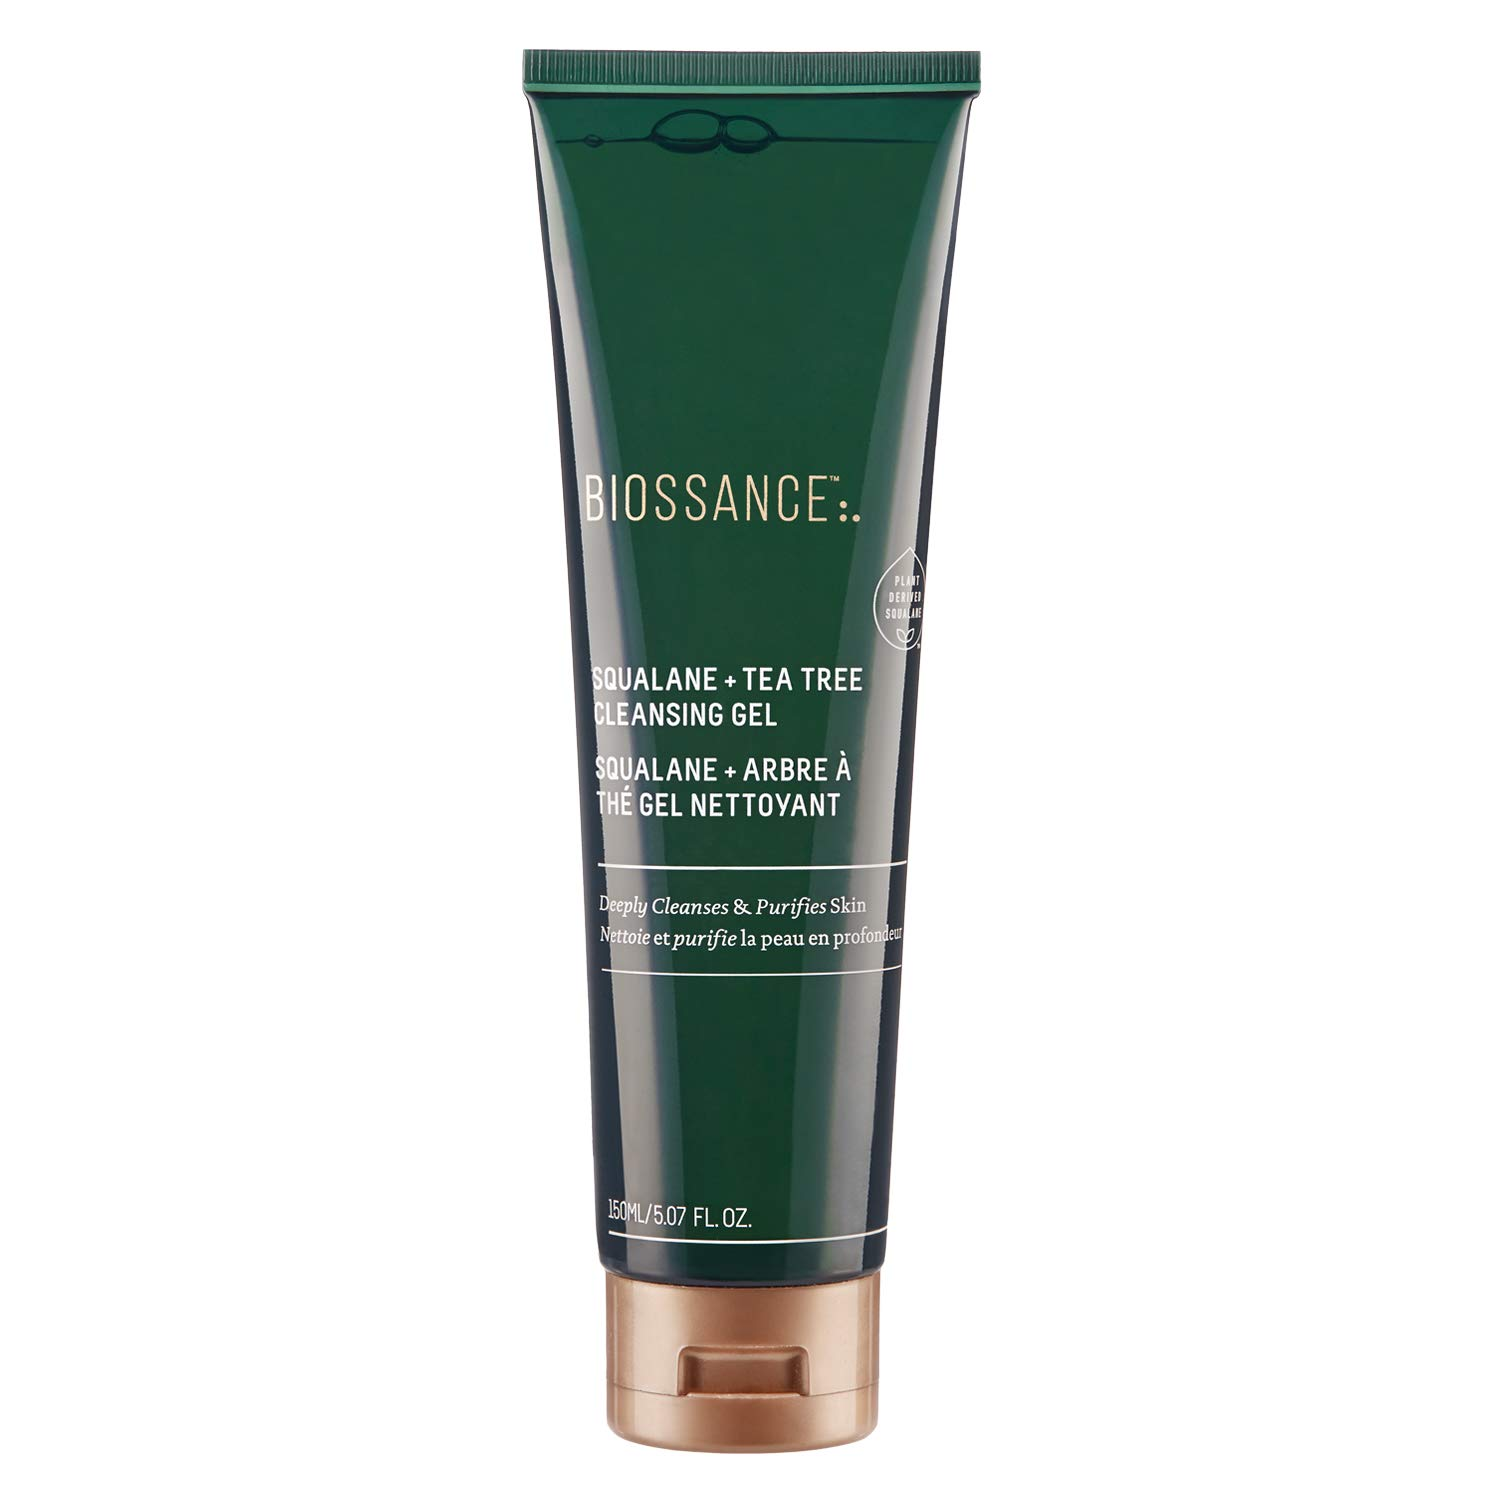 Biossance Squalane + Tea Tree Cleansing Gel - Gel Cleanser for Oily, Breakout-Prone Skin - No Parabens or Synthetic Fragrance (150ml)